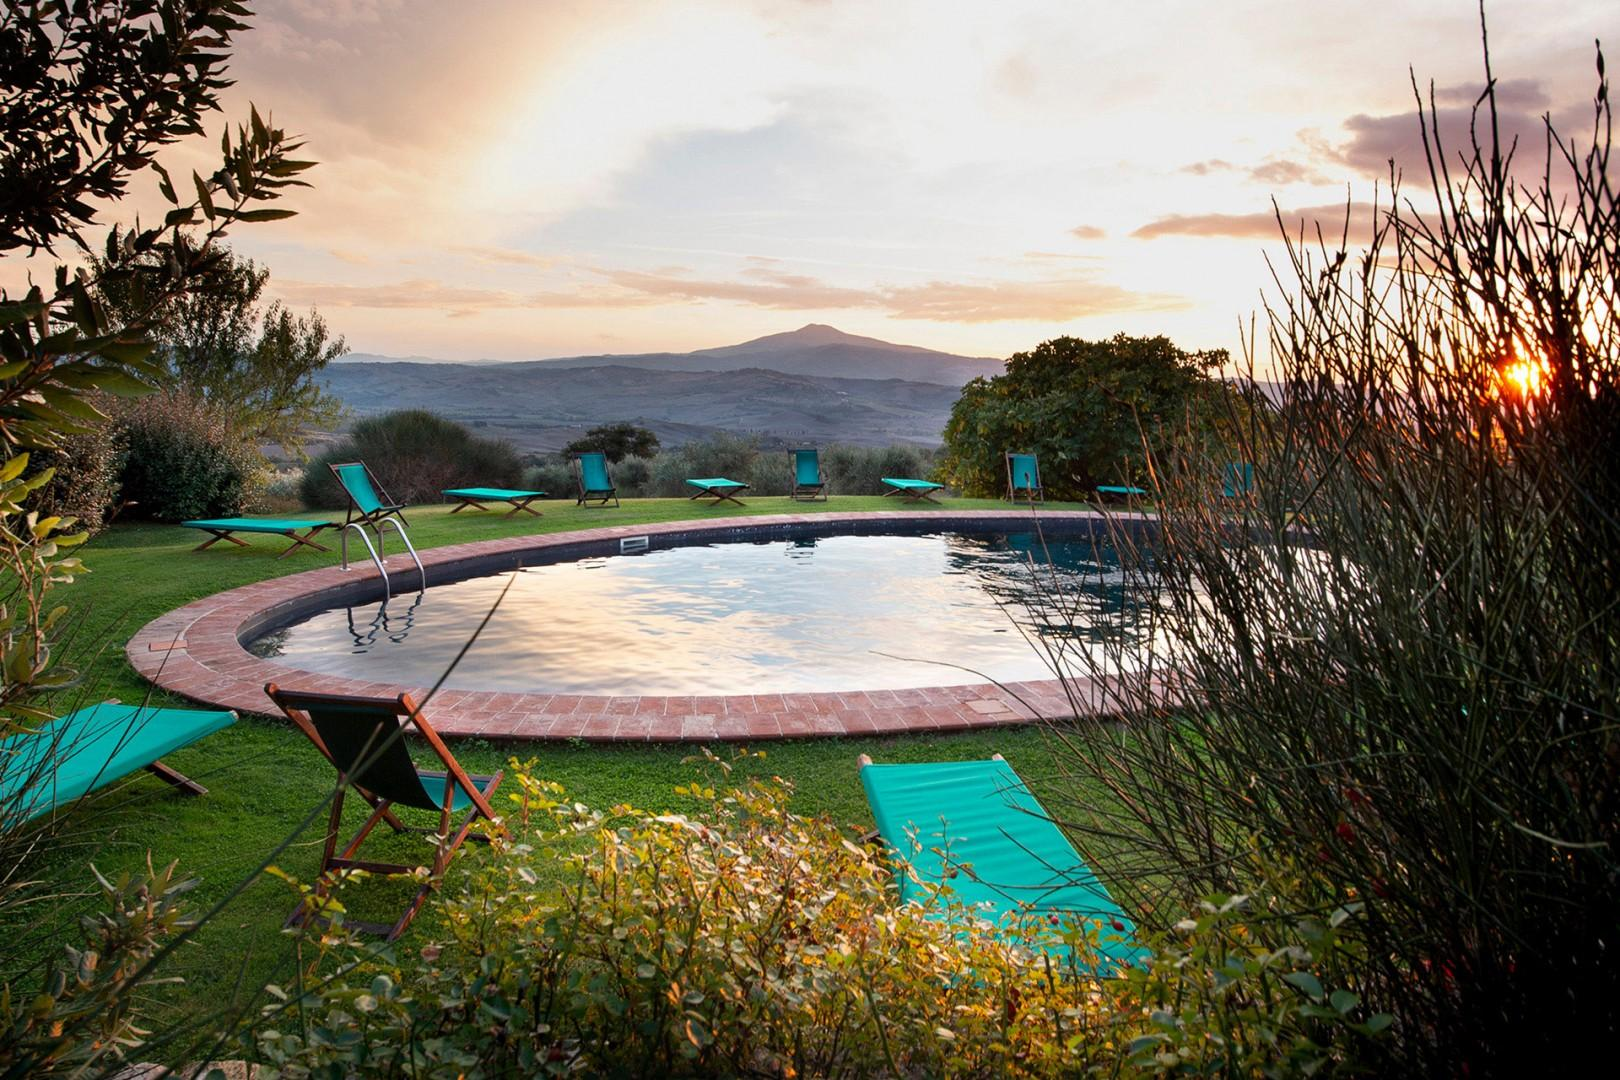 Spectacular views from the shared swimming pool. Pool is open during summer months.